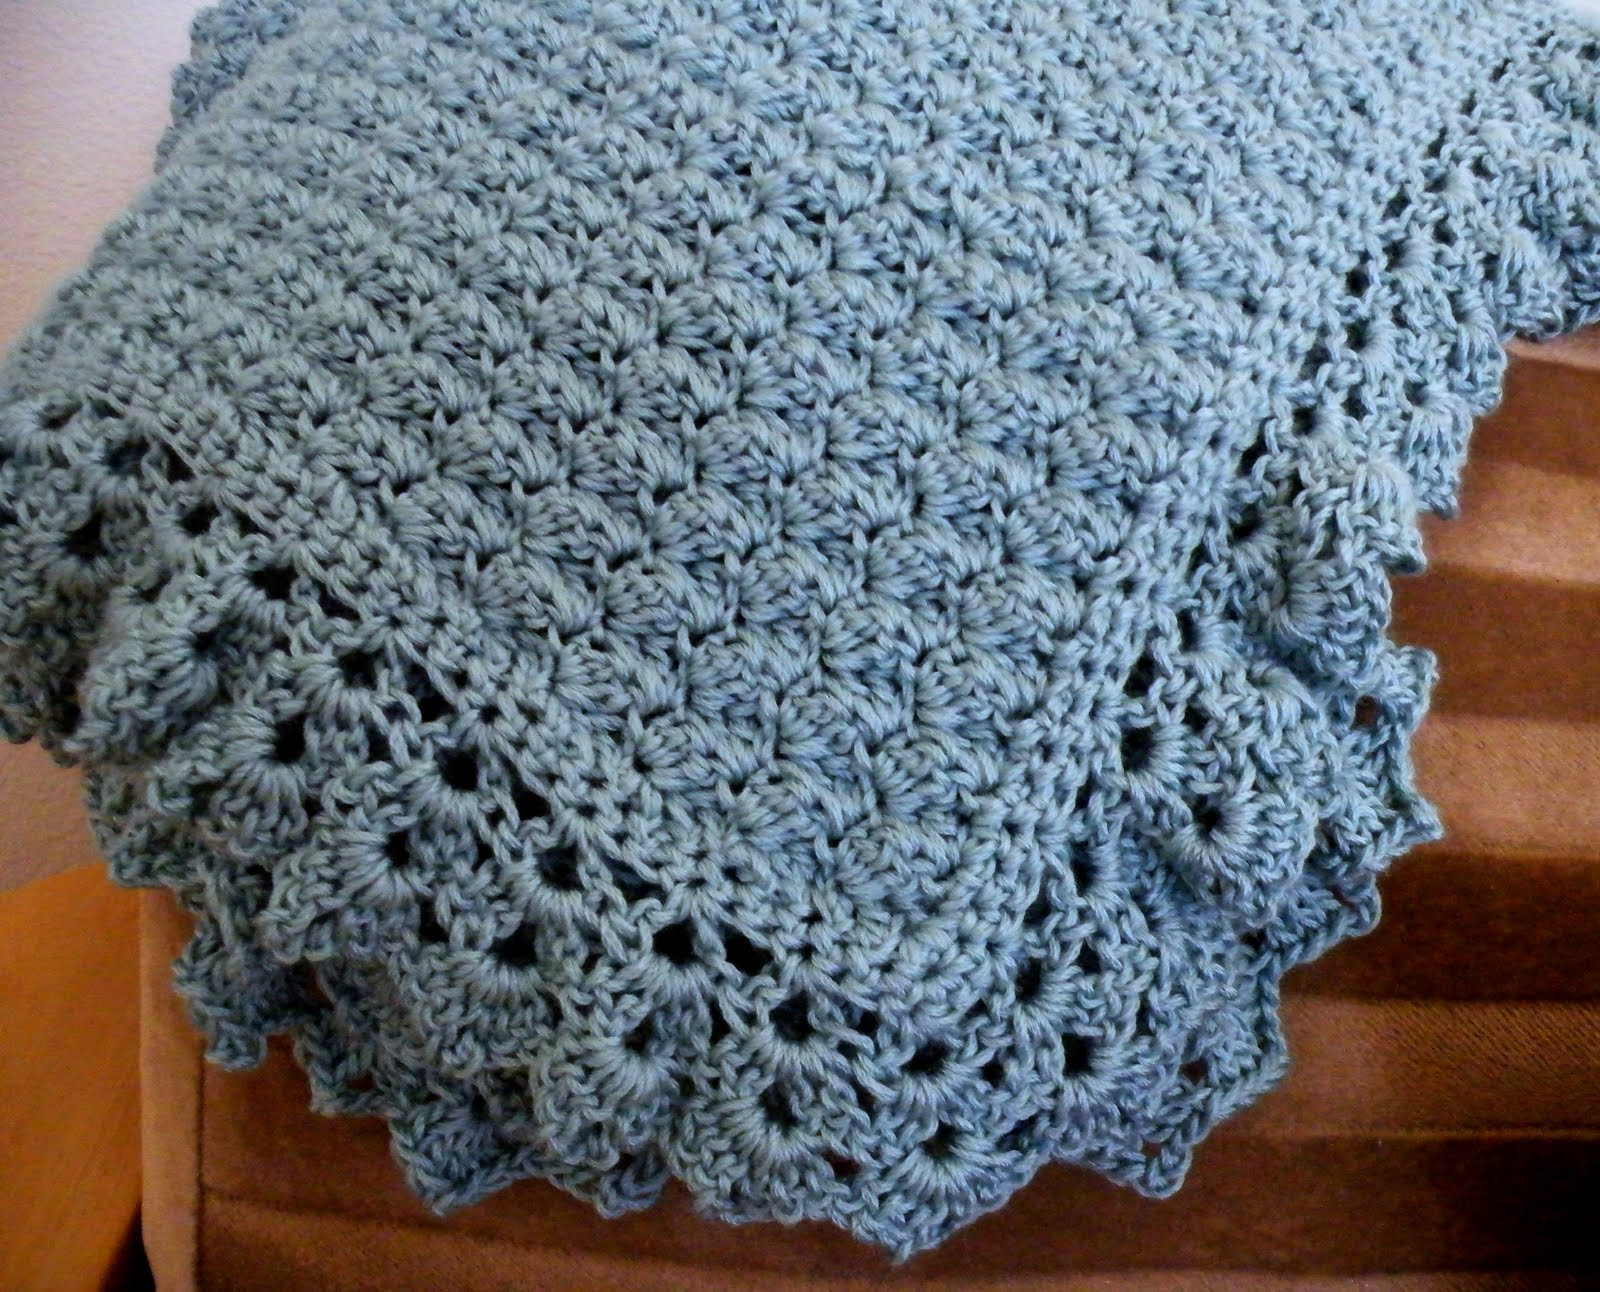 New Little Scraps Of Happiness Crochet Baby Blanket Pattern Crochet Edging for Baby Blanket Patterns Of New 43 Pics Crochet Edging for Baby Blanket Patterns